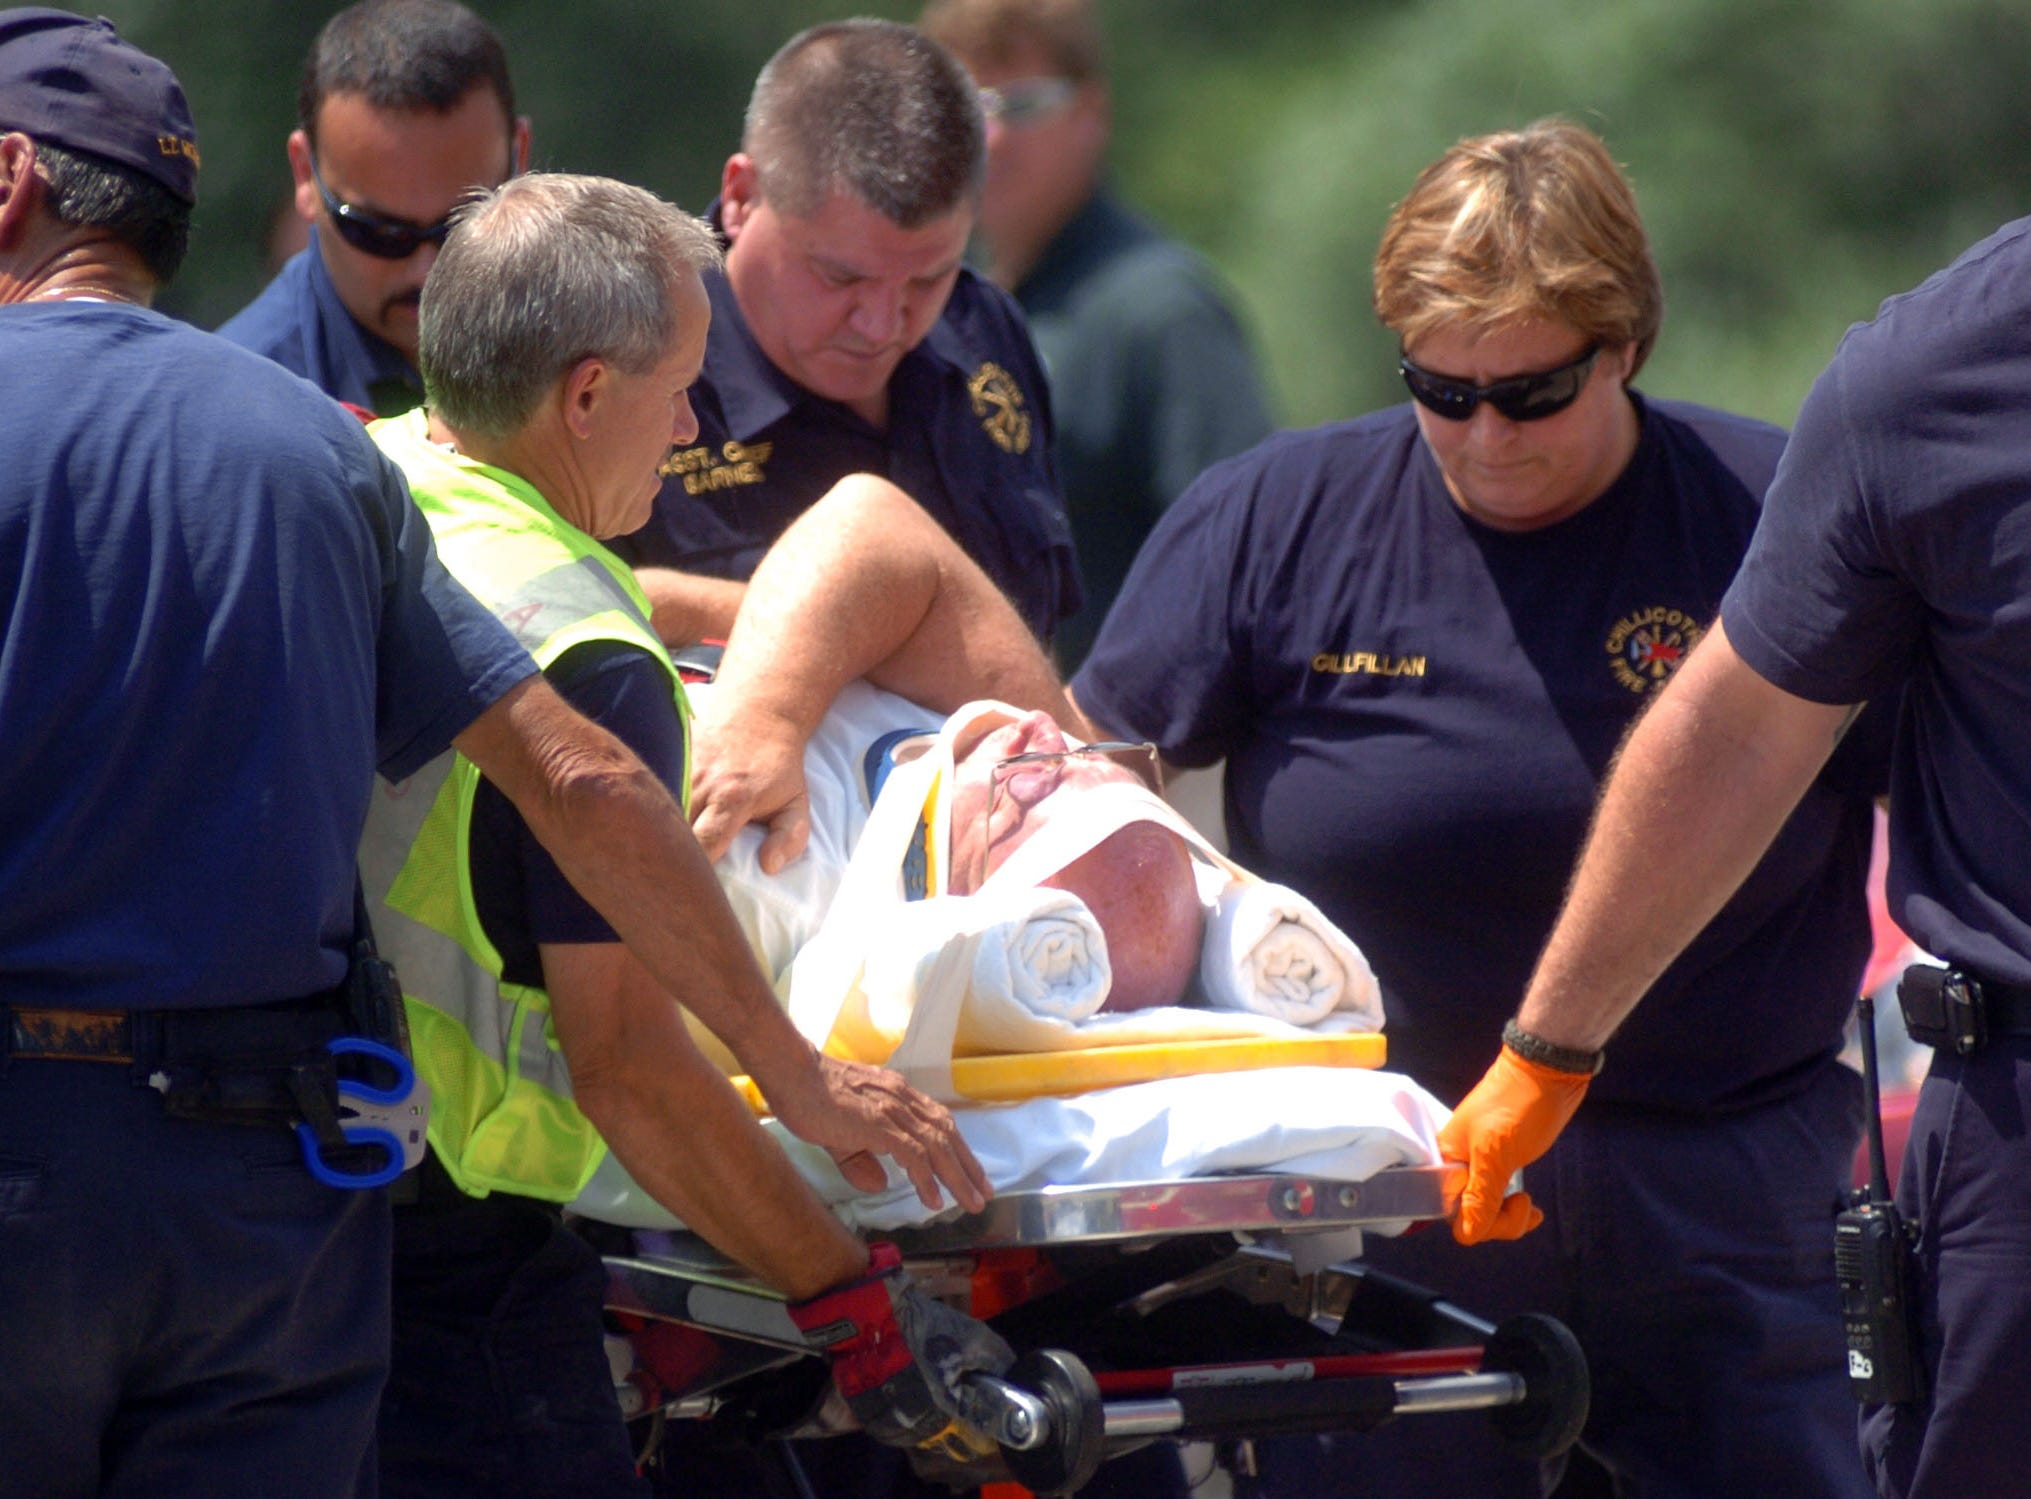 Members of the Chillicothe Fire Department lead a man to an ambulance after being involved in accident on the corner of Bridge Street and Riverside Street in 2010.   The accident occurred after a City Services vehicle hit a sheriff deputy heading on a call, involving two additional civilian vehicles.